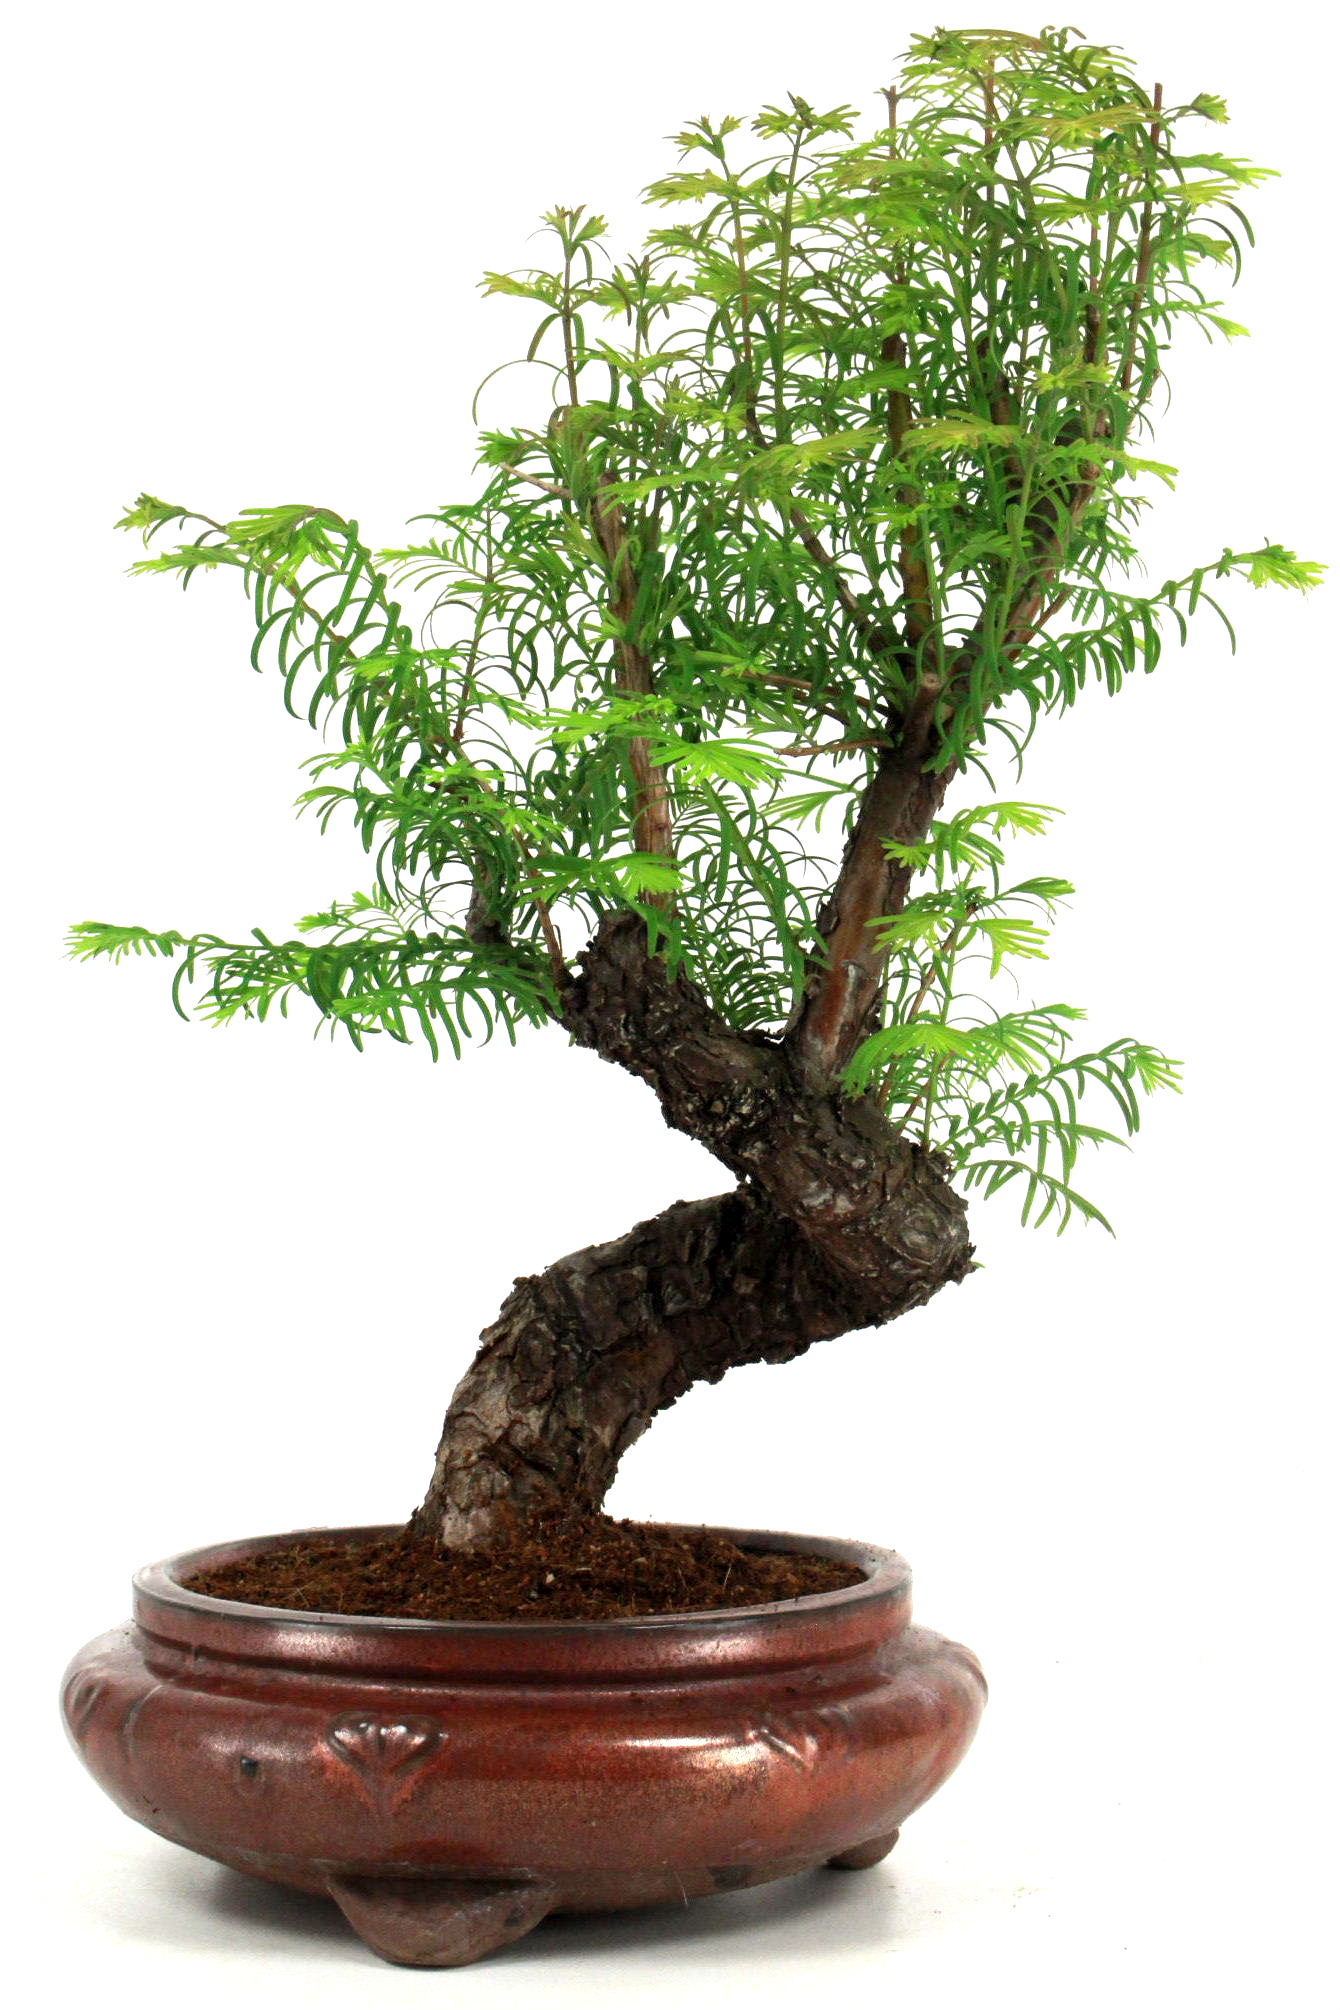 Urweltmammutbaum bonsai 45 cm r223 bei oyaki bonsai kaufen for Bonsai onlineshop